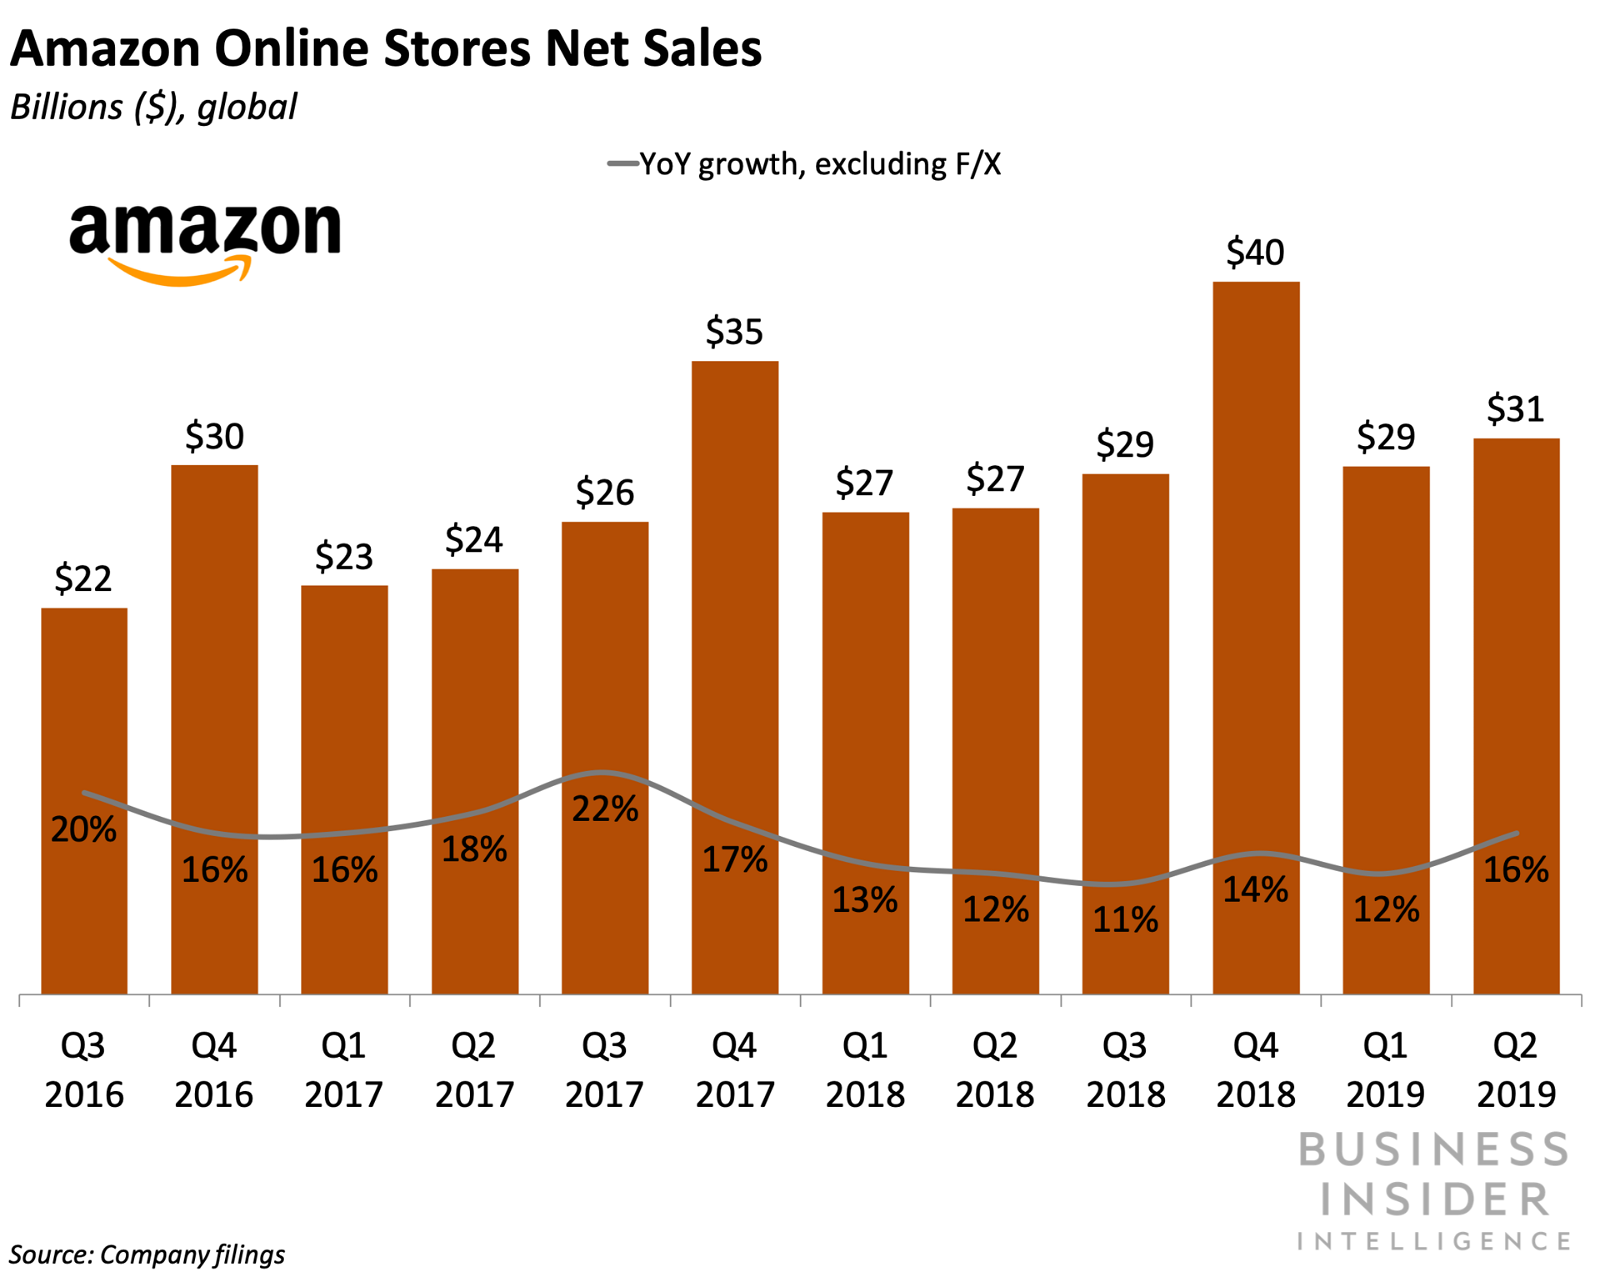 Amazon's positioning itself to steal sales on competing pages